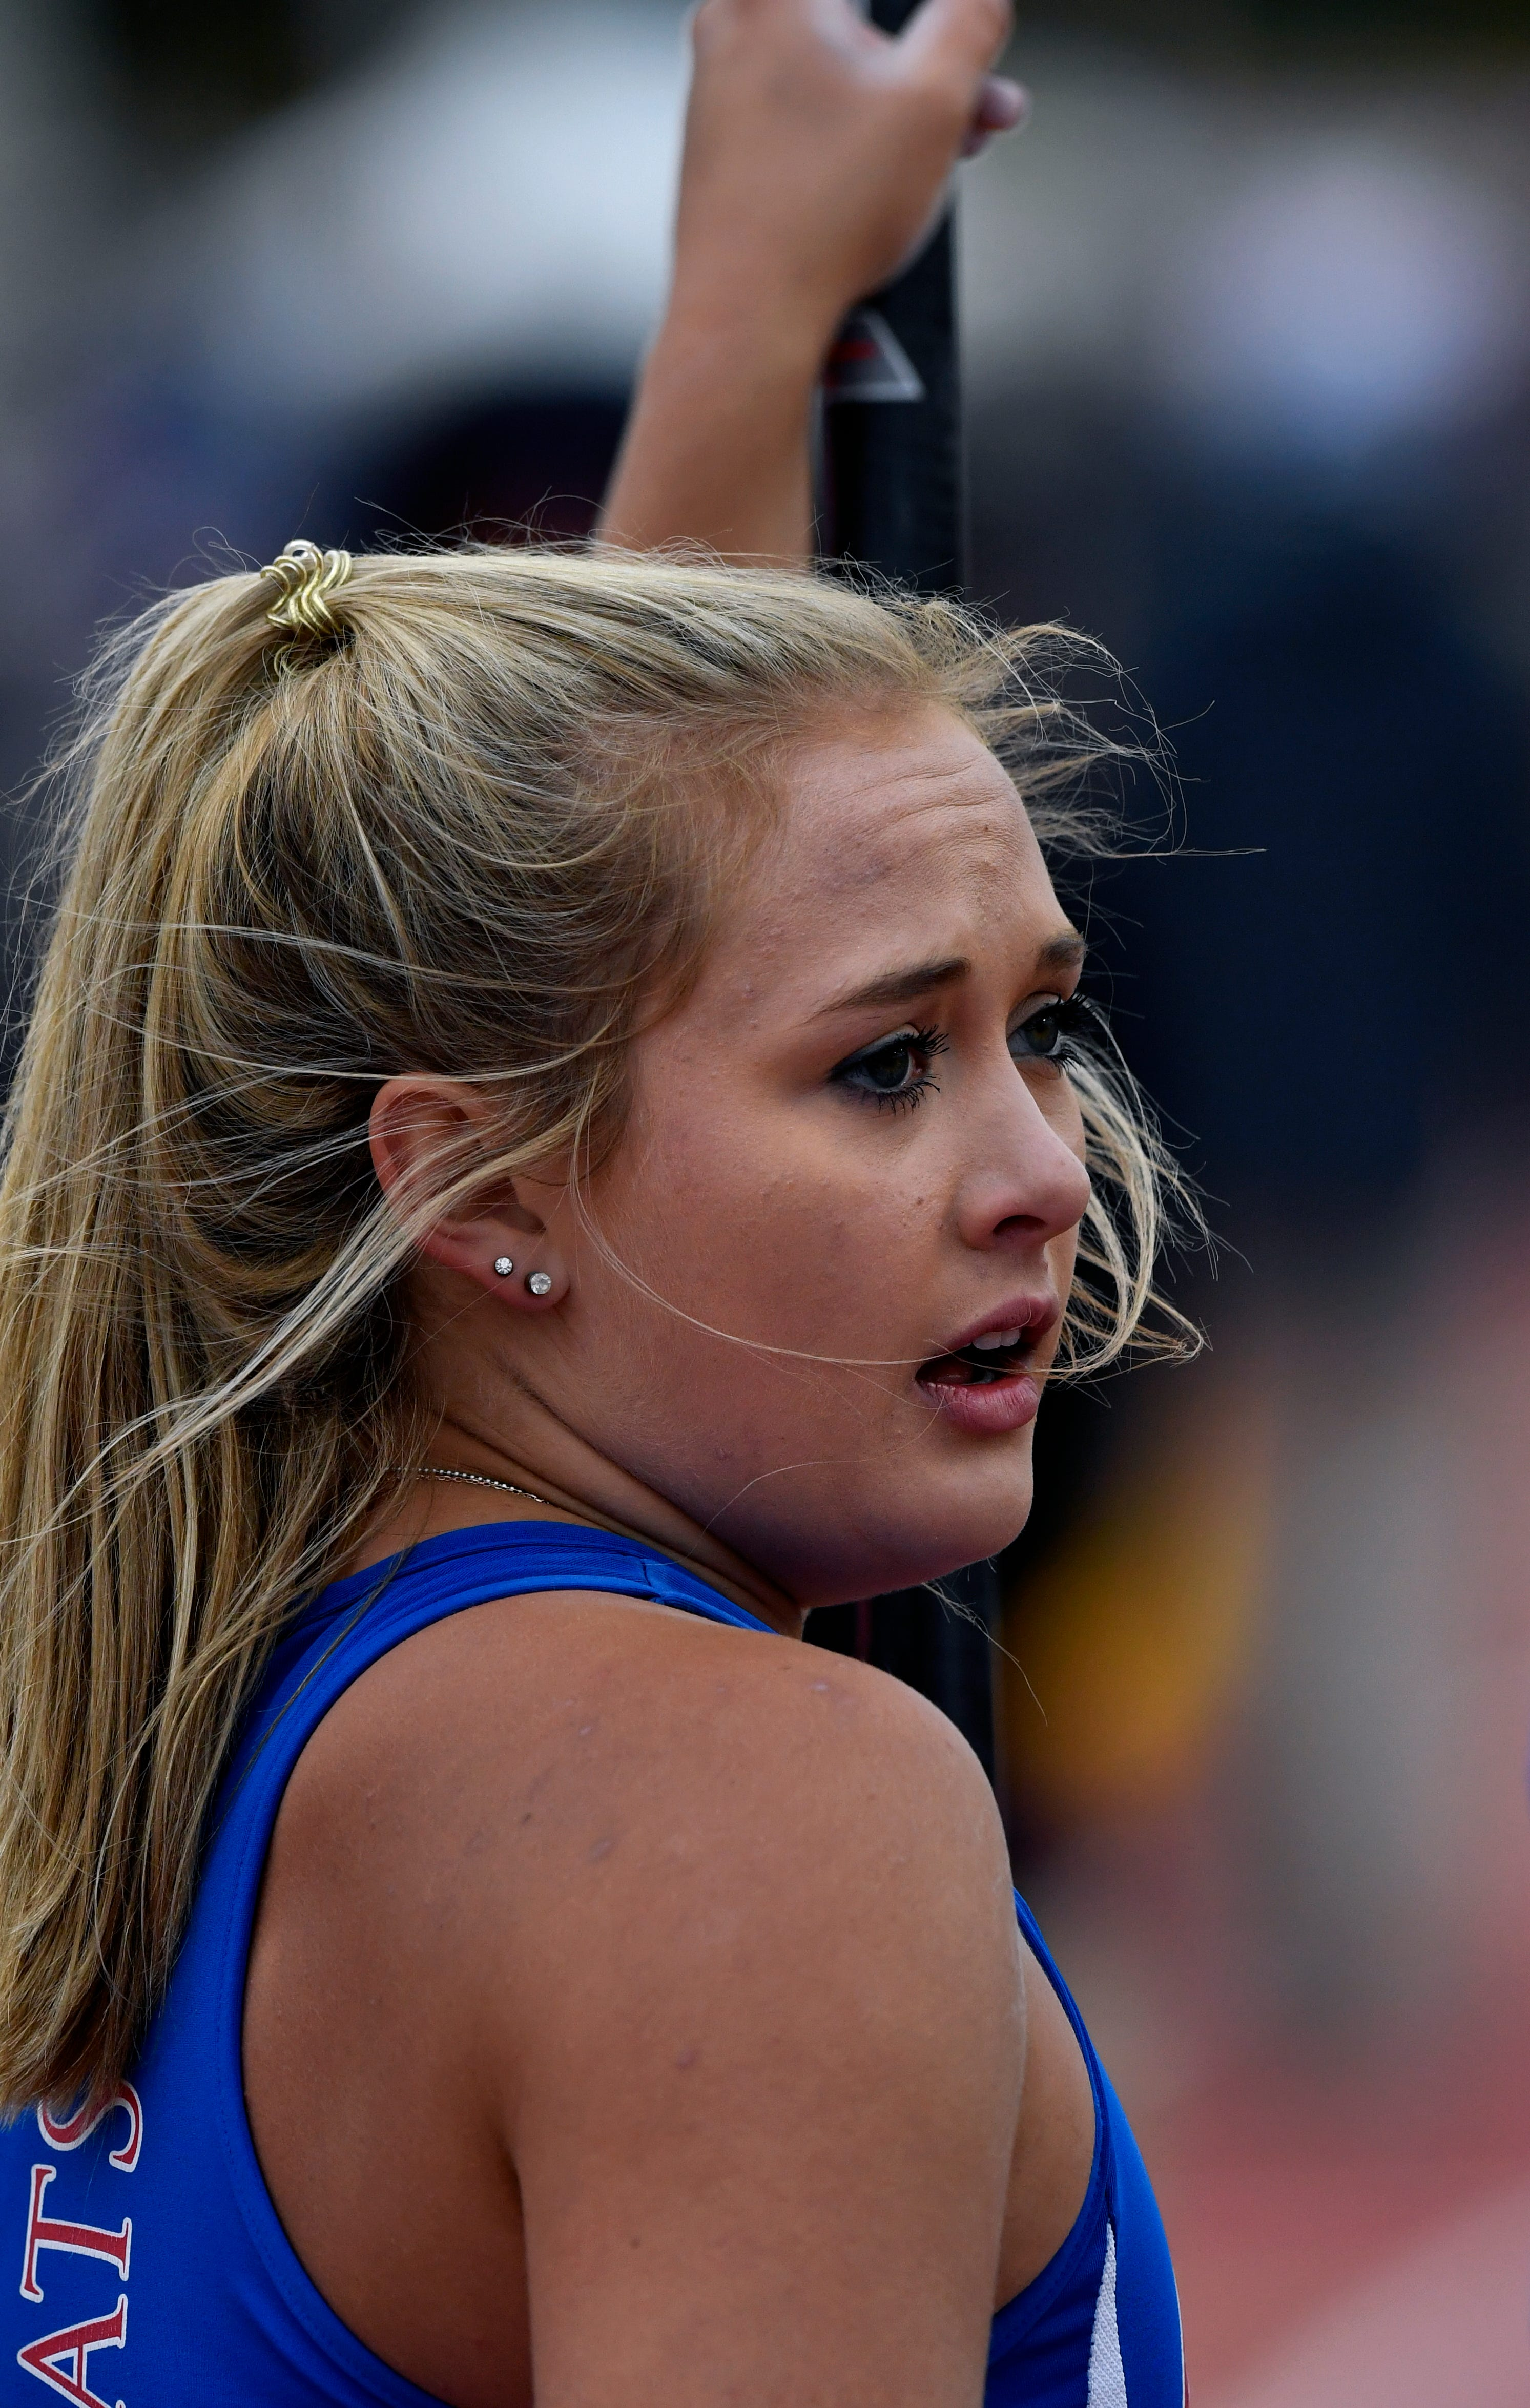 Riley Floerke of Gregory-Portland speaks with her coach in between attempts in the Girls 5A Pole Vault at the UIL State Track & Field Championships in Austin Friday May 10, 2019. Floerke went on to win the event.